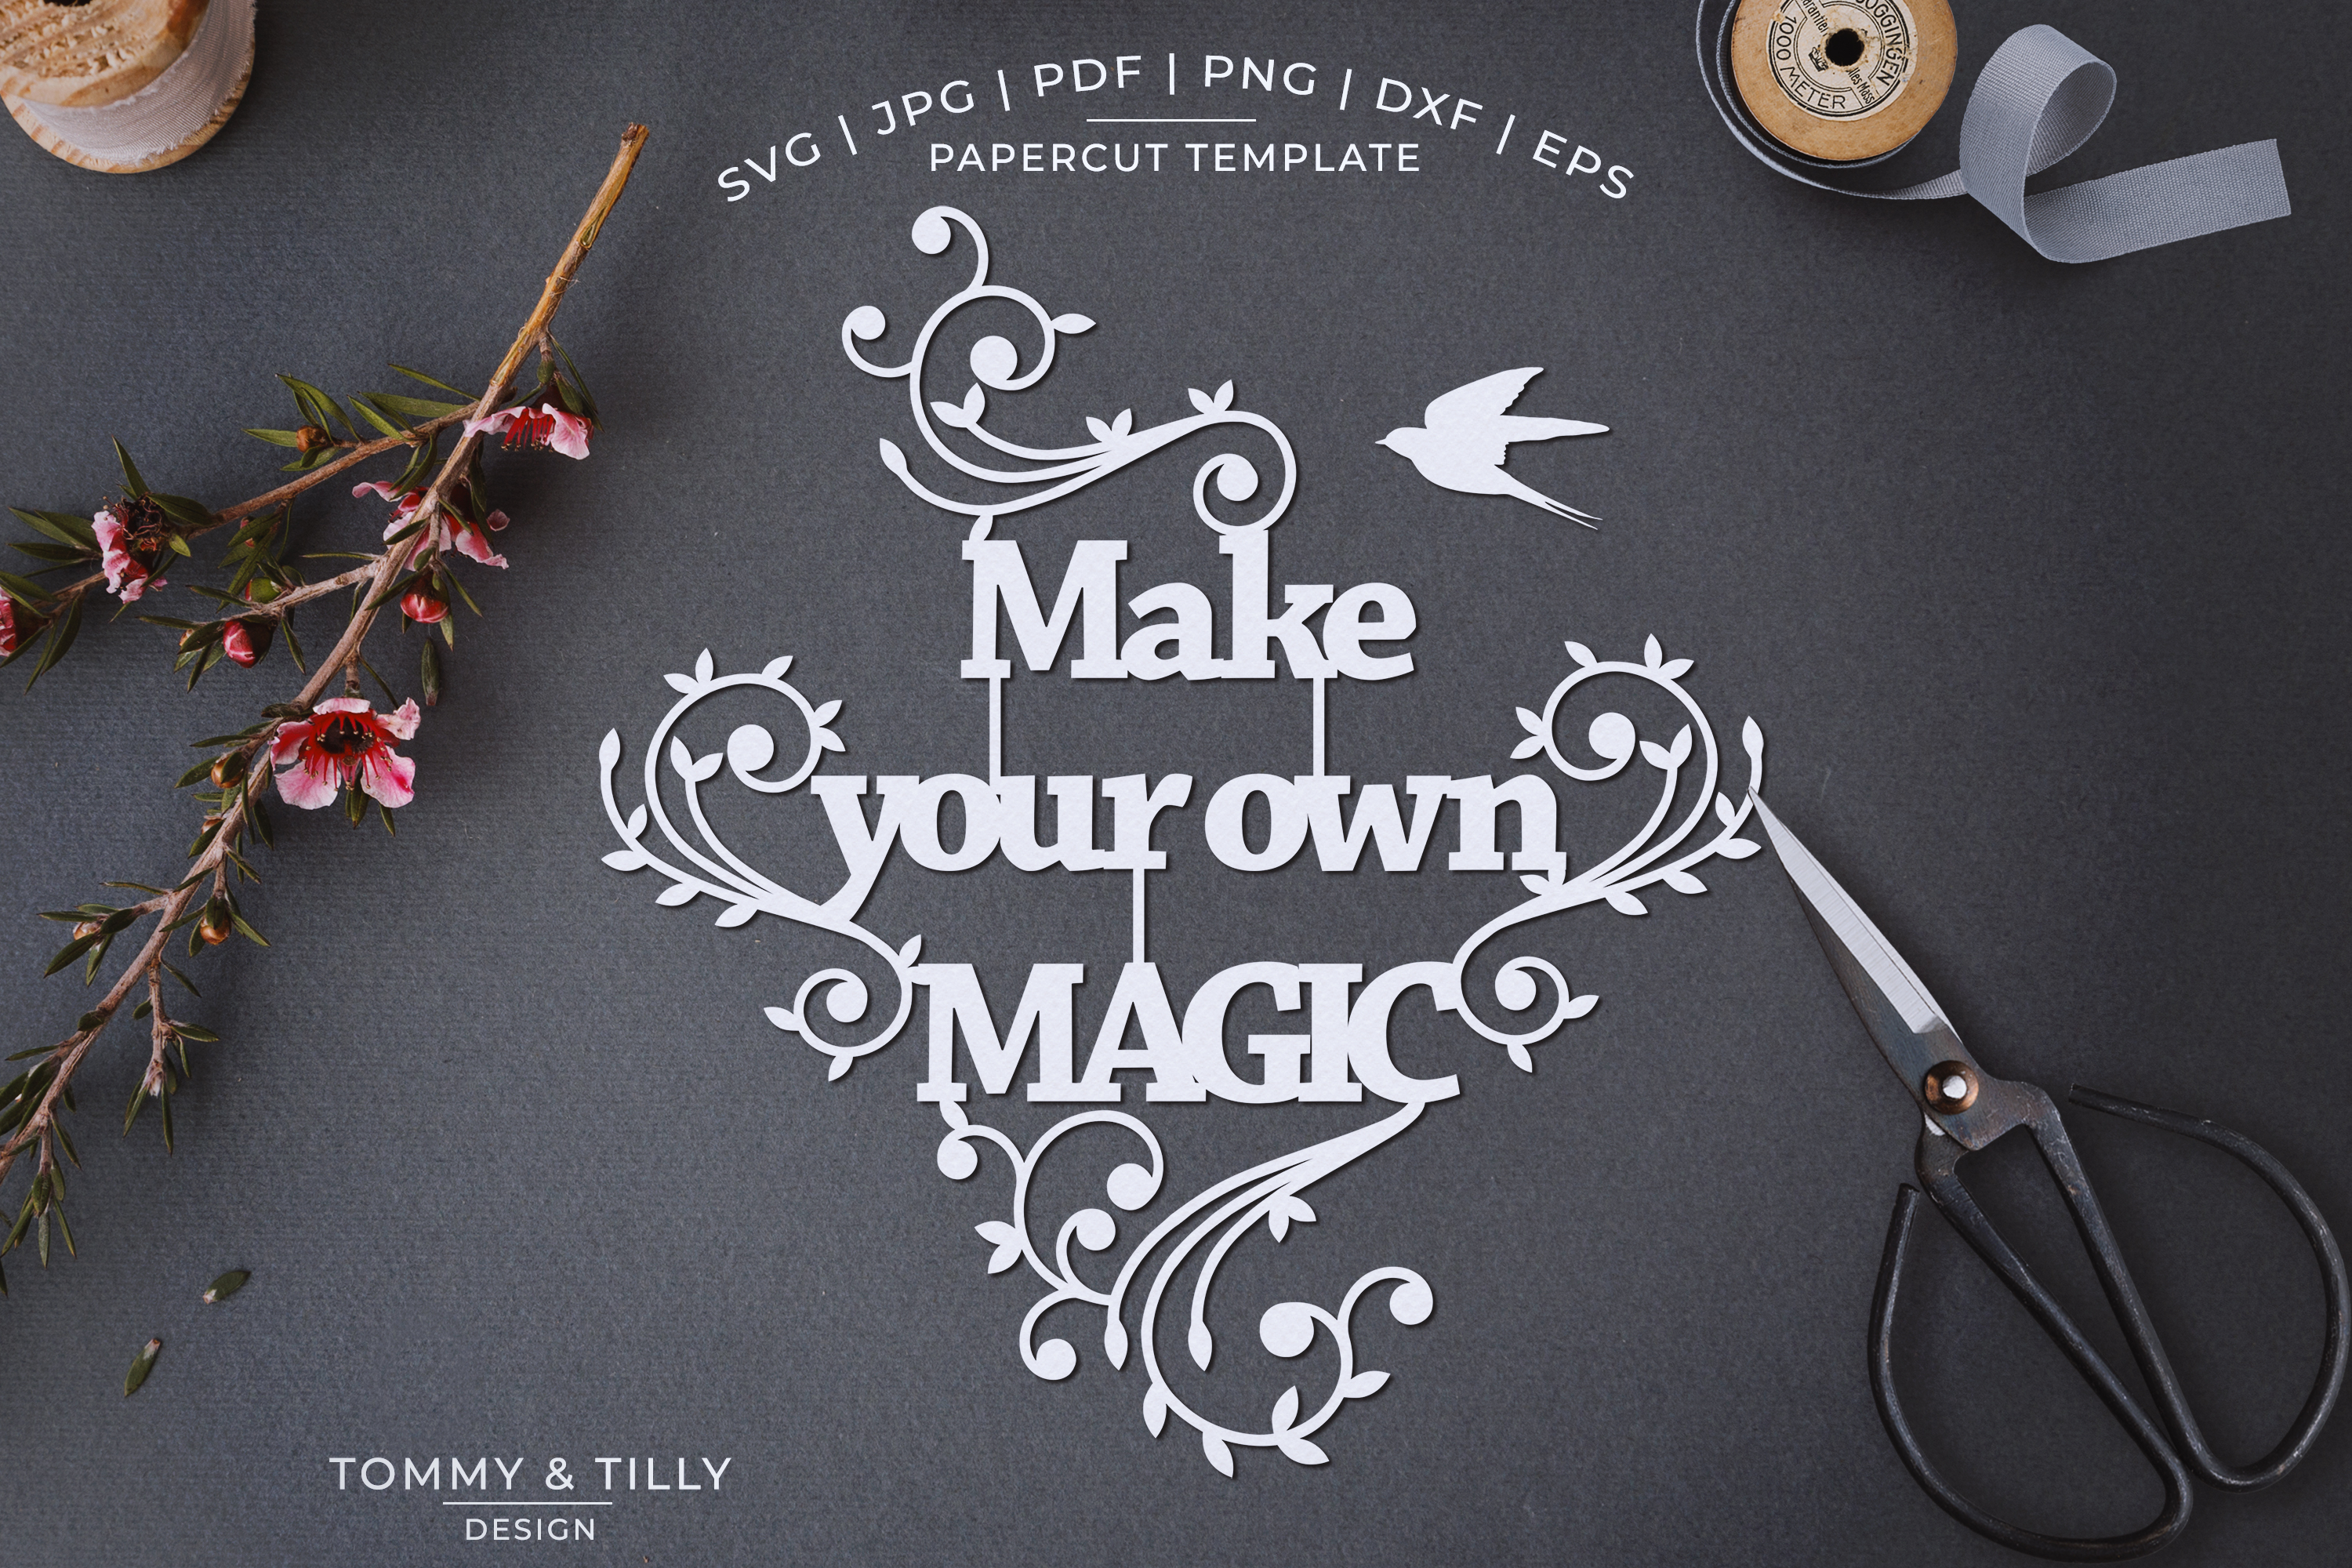 Make your own magic - Papercut SVG EPS DXF example image 1